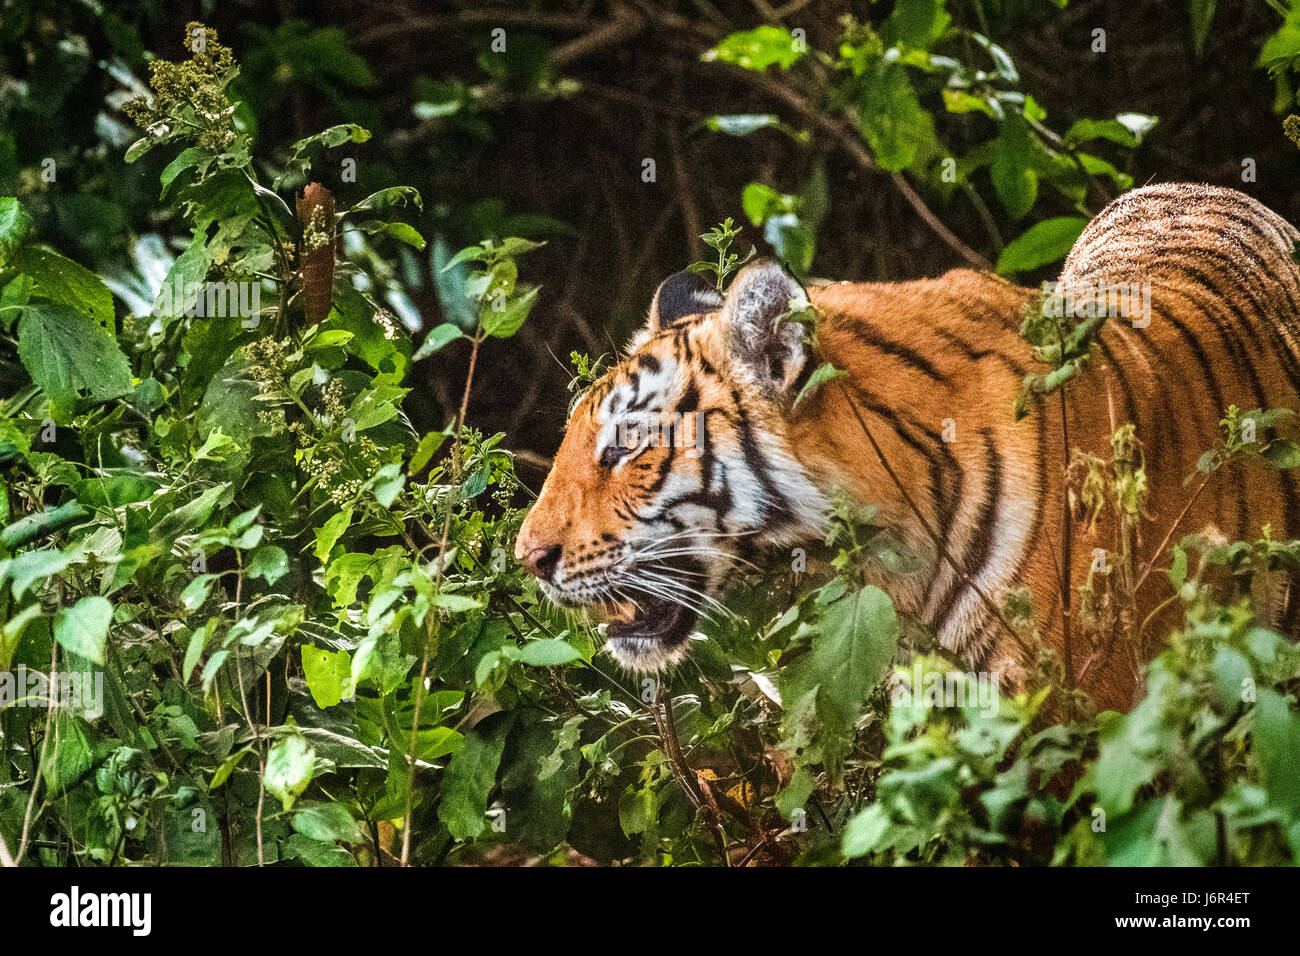 Tiger in motion - Stock Image